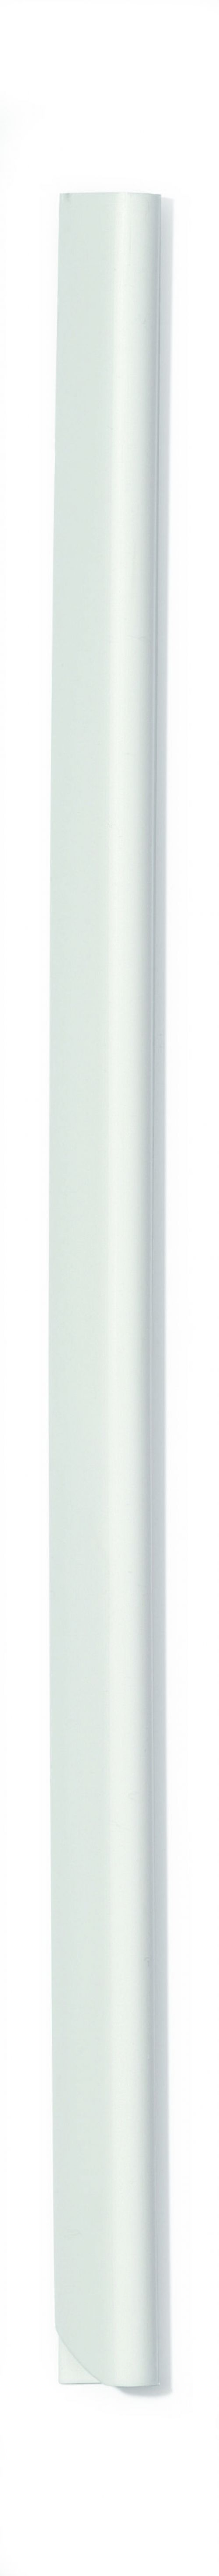 Durable Spine Bar A4 6mm White 290102 (PK100)